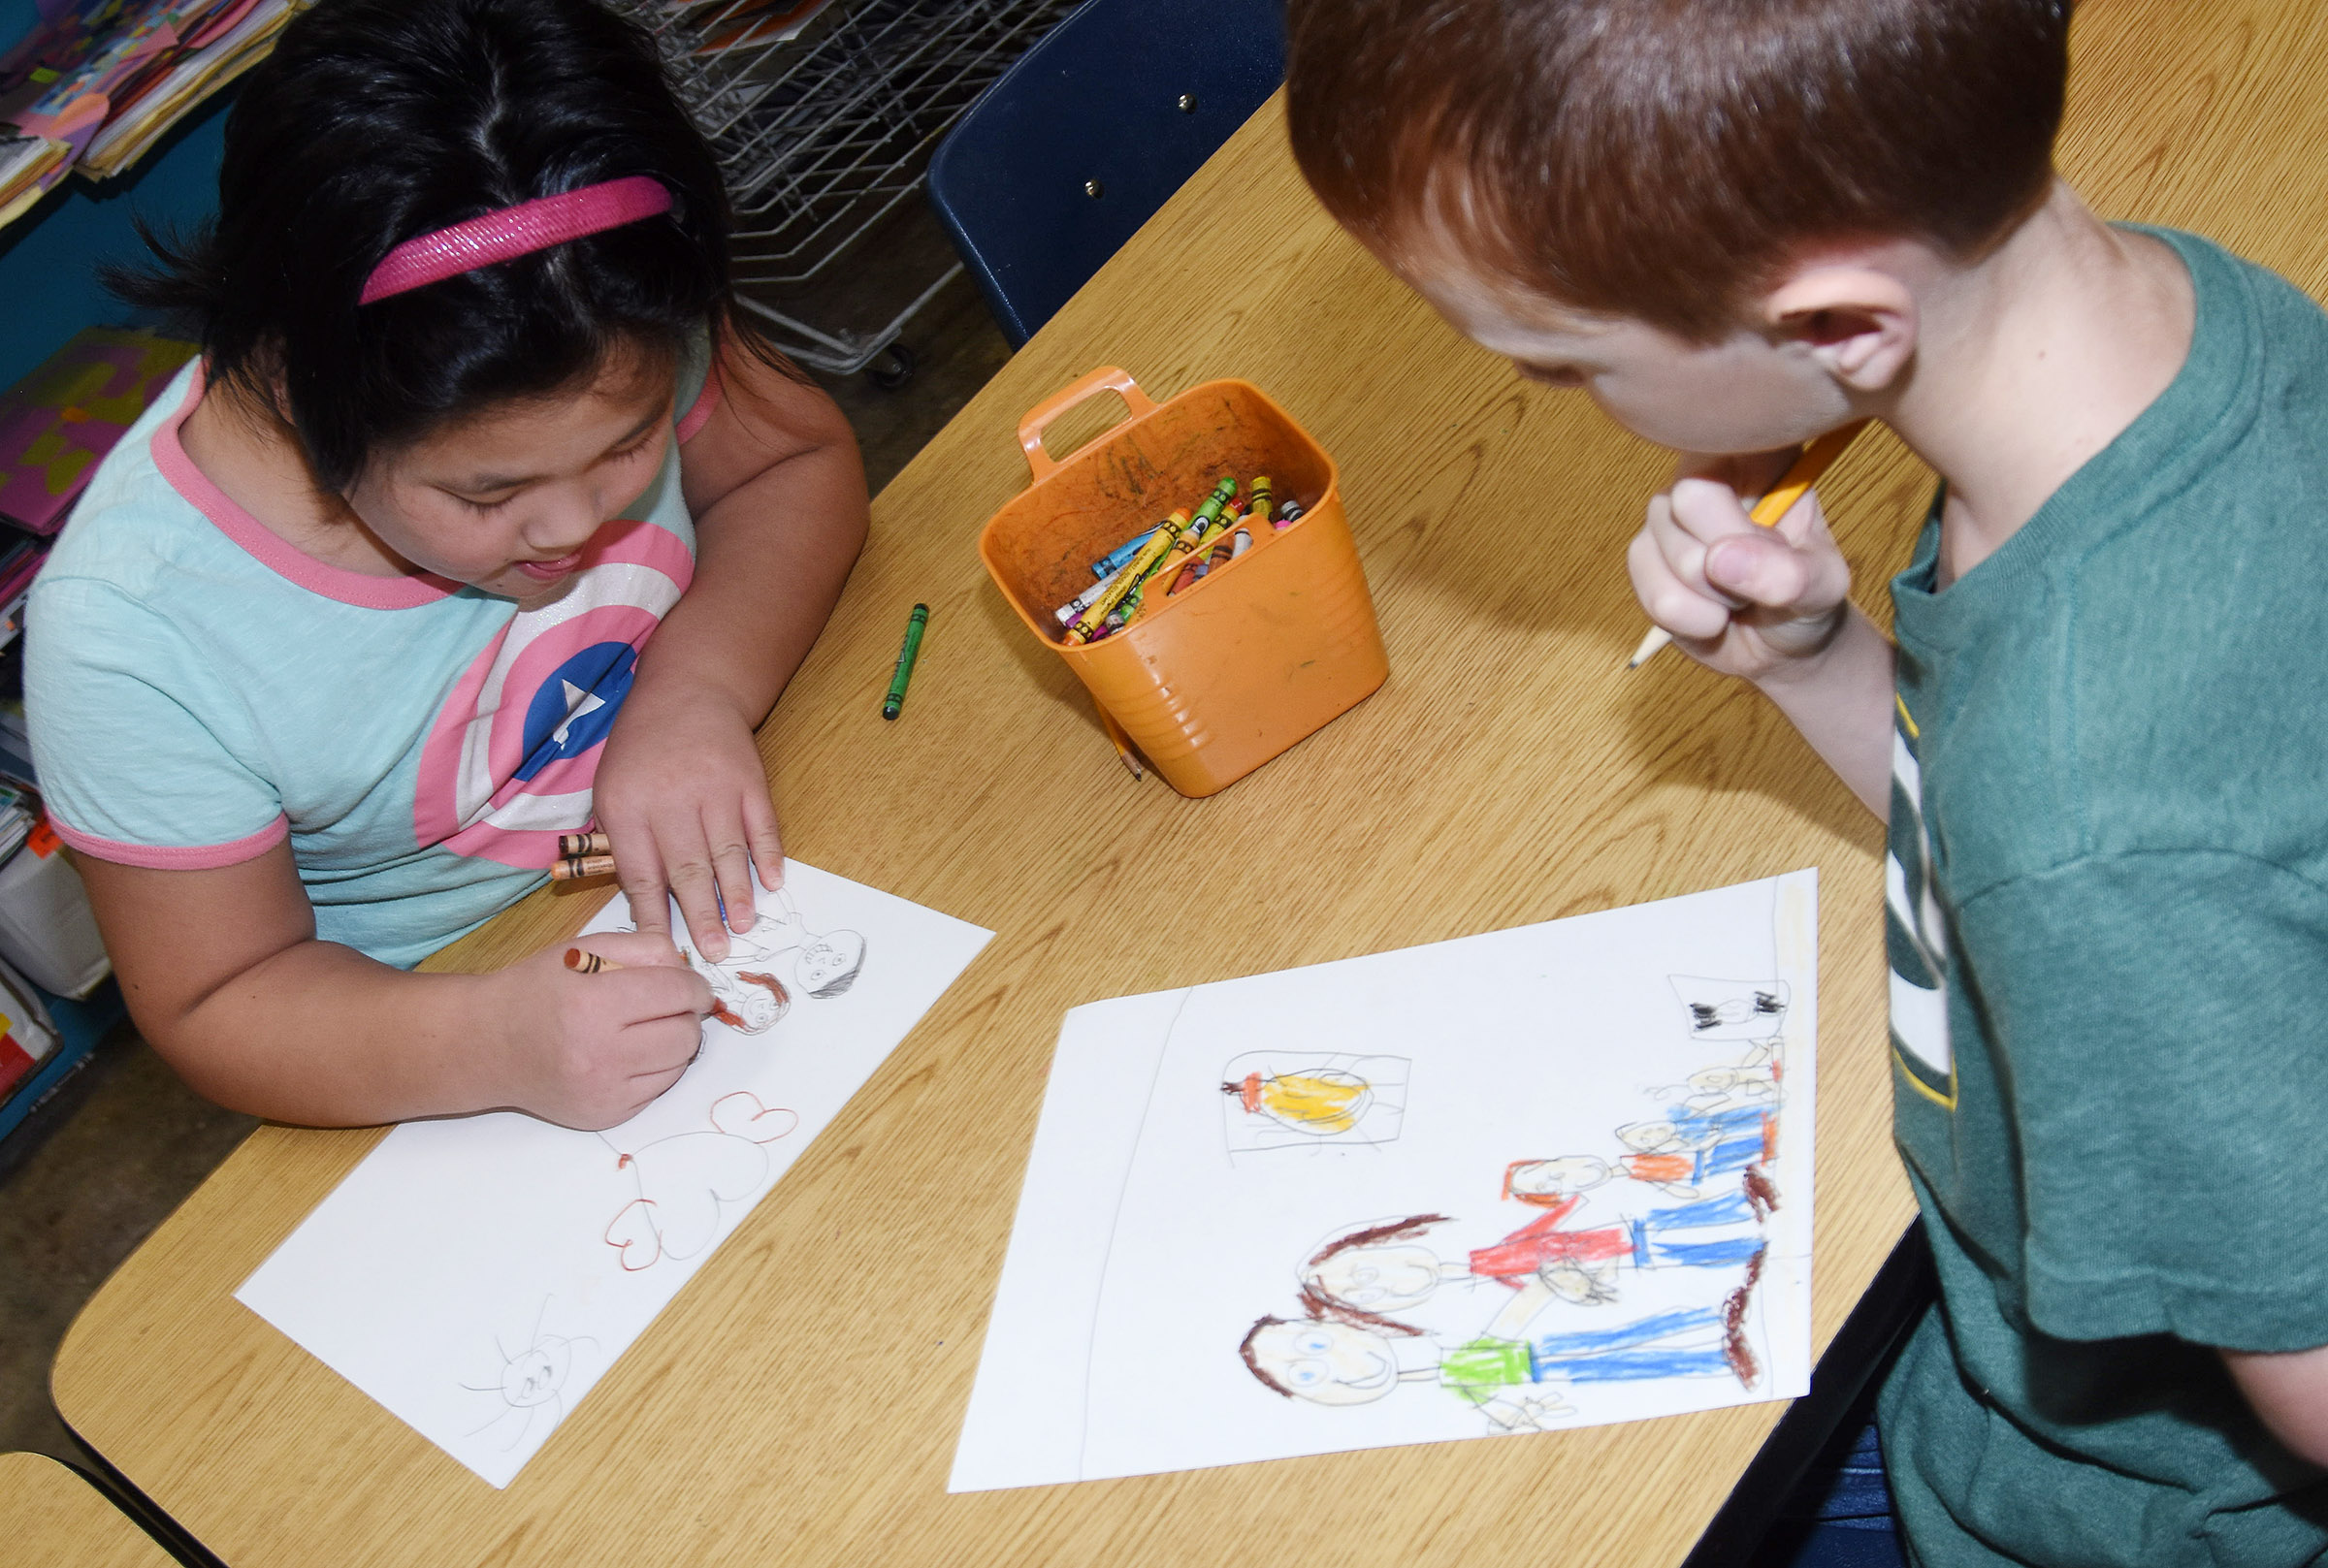 CES second-graders Vicky Li, at left, and Carson Montes work on their family portraits.